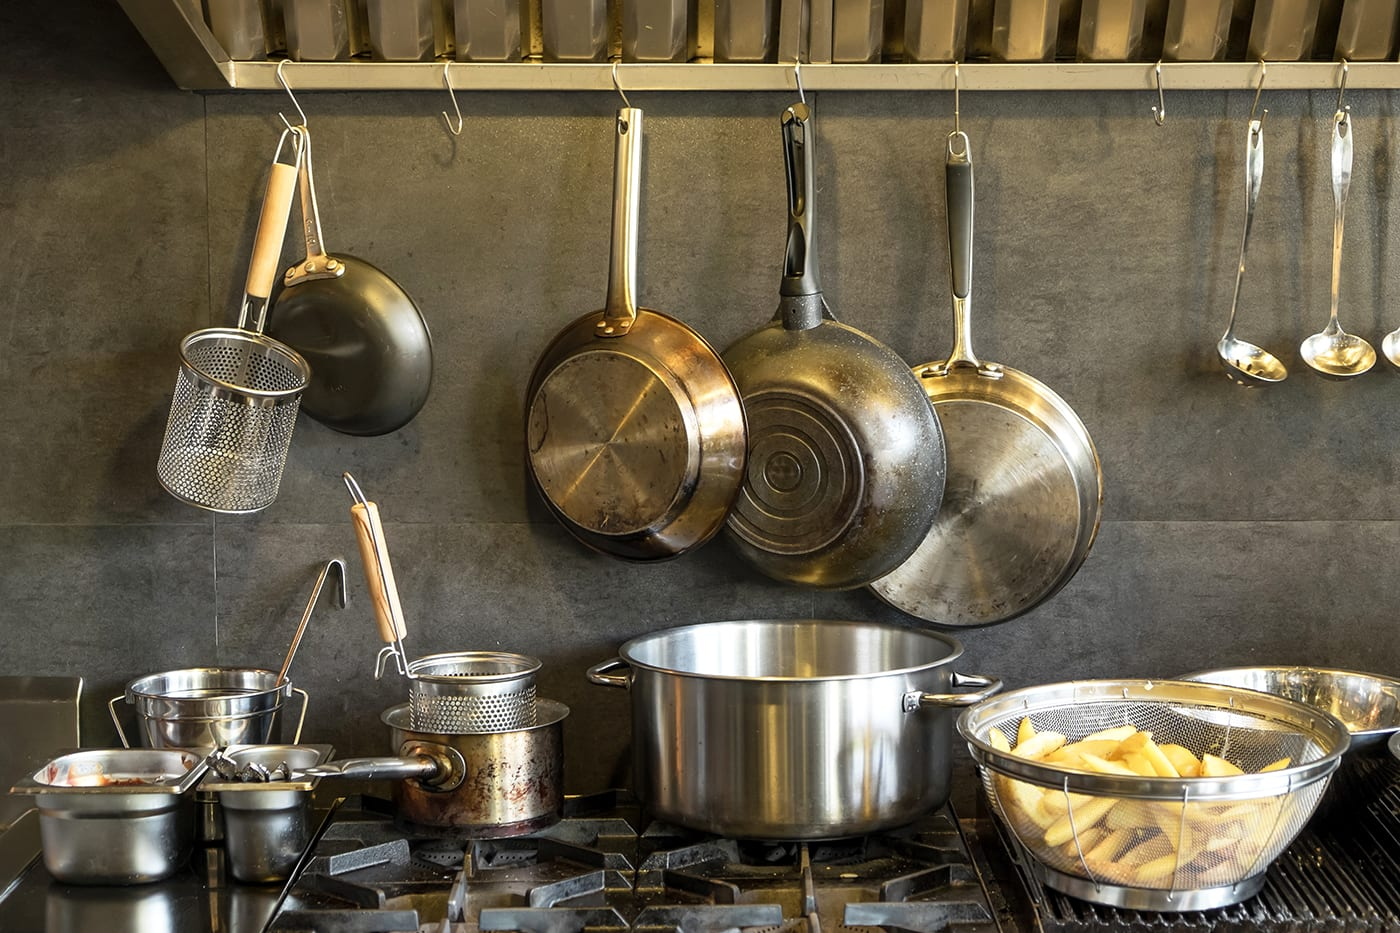 Several large stainless-steel pots and pans rest on top of a stove. Above them are smaller stainless-steel pans and colanders.